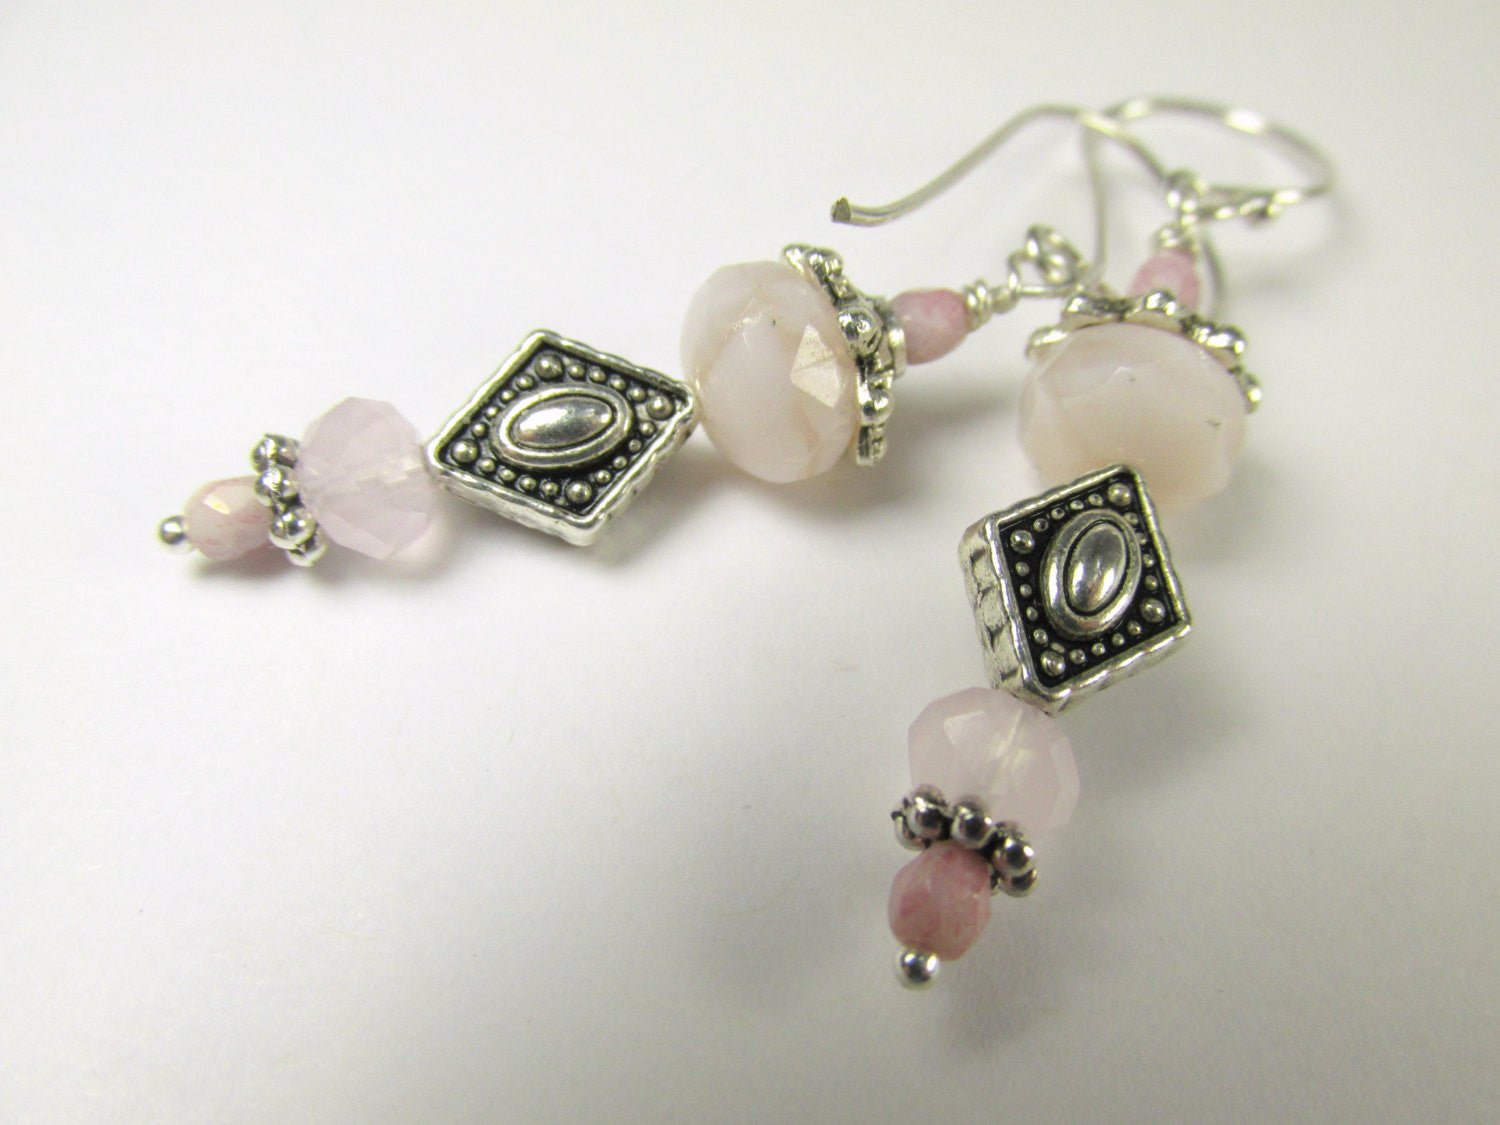 Pale Pink Rose Quartz Earrings on Bali Sterling Silver wires - 3 piece set available - Odyssey Creations